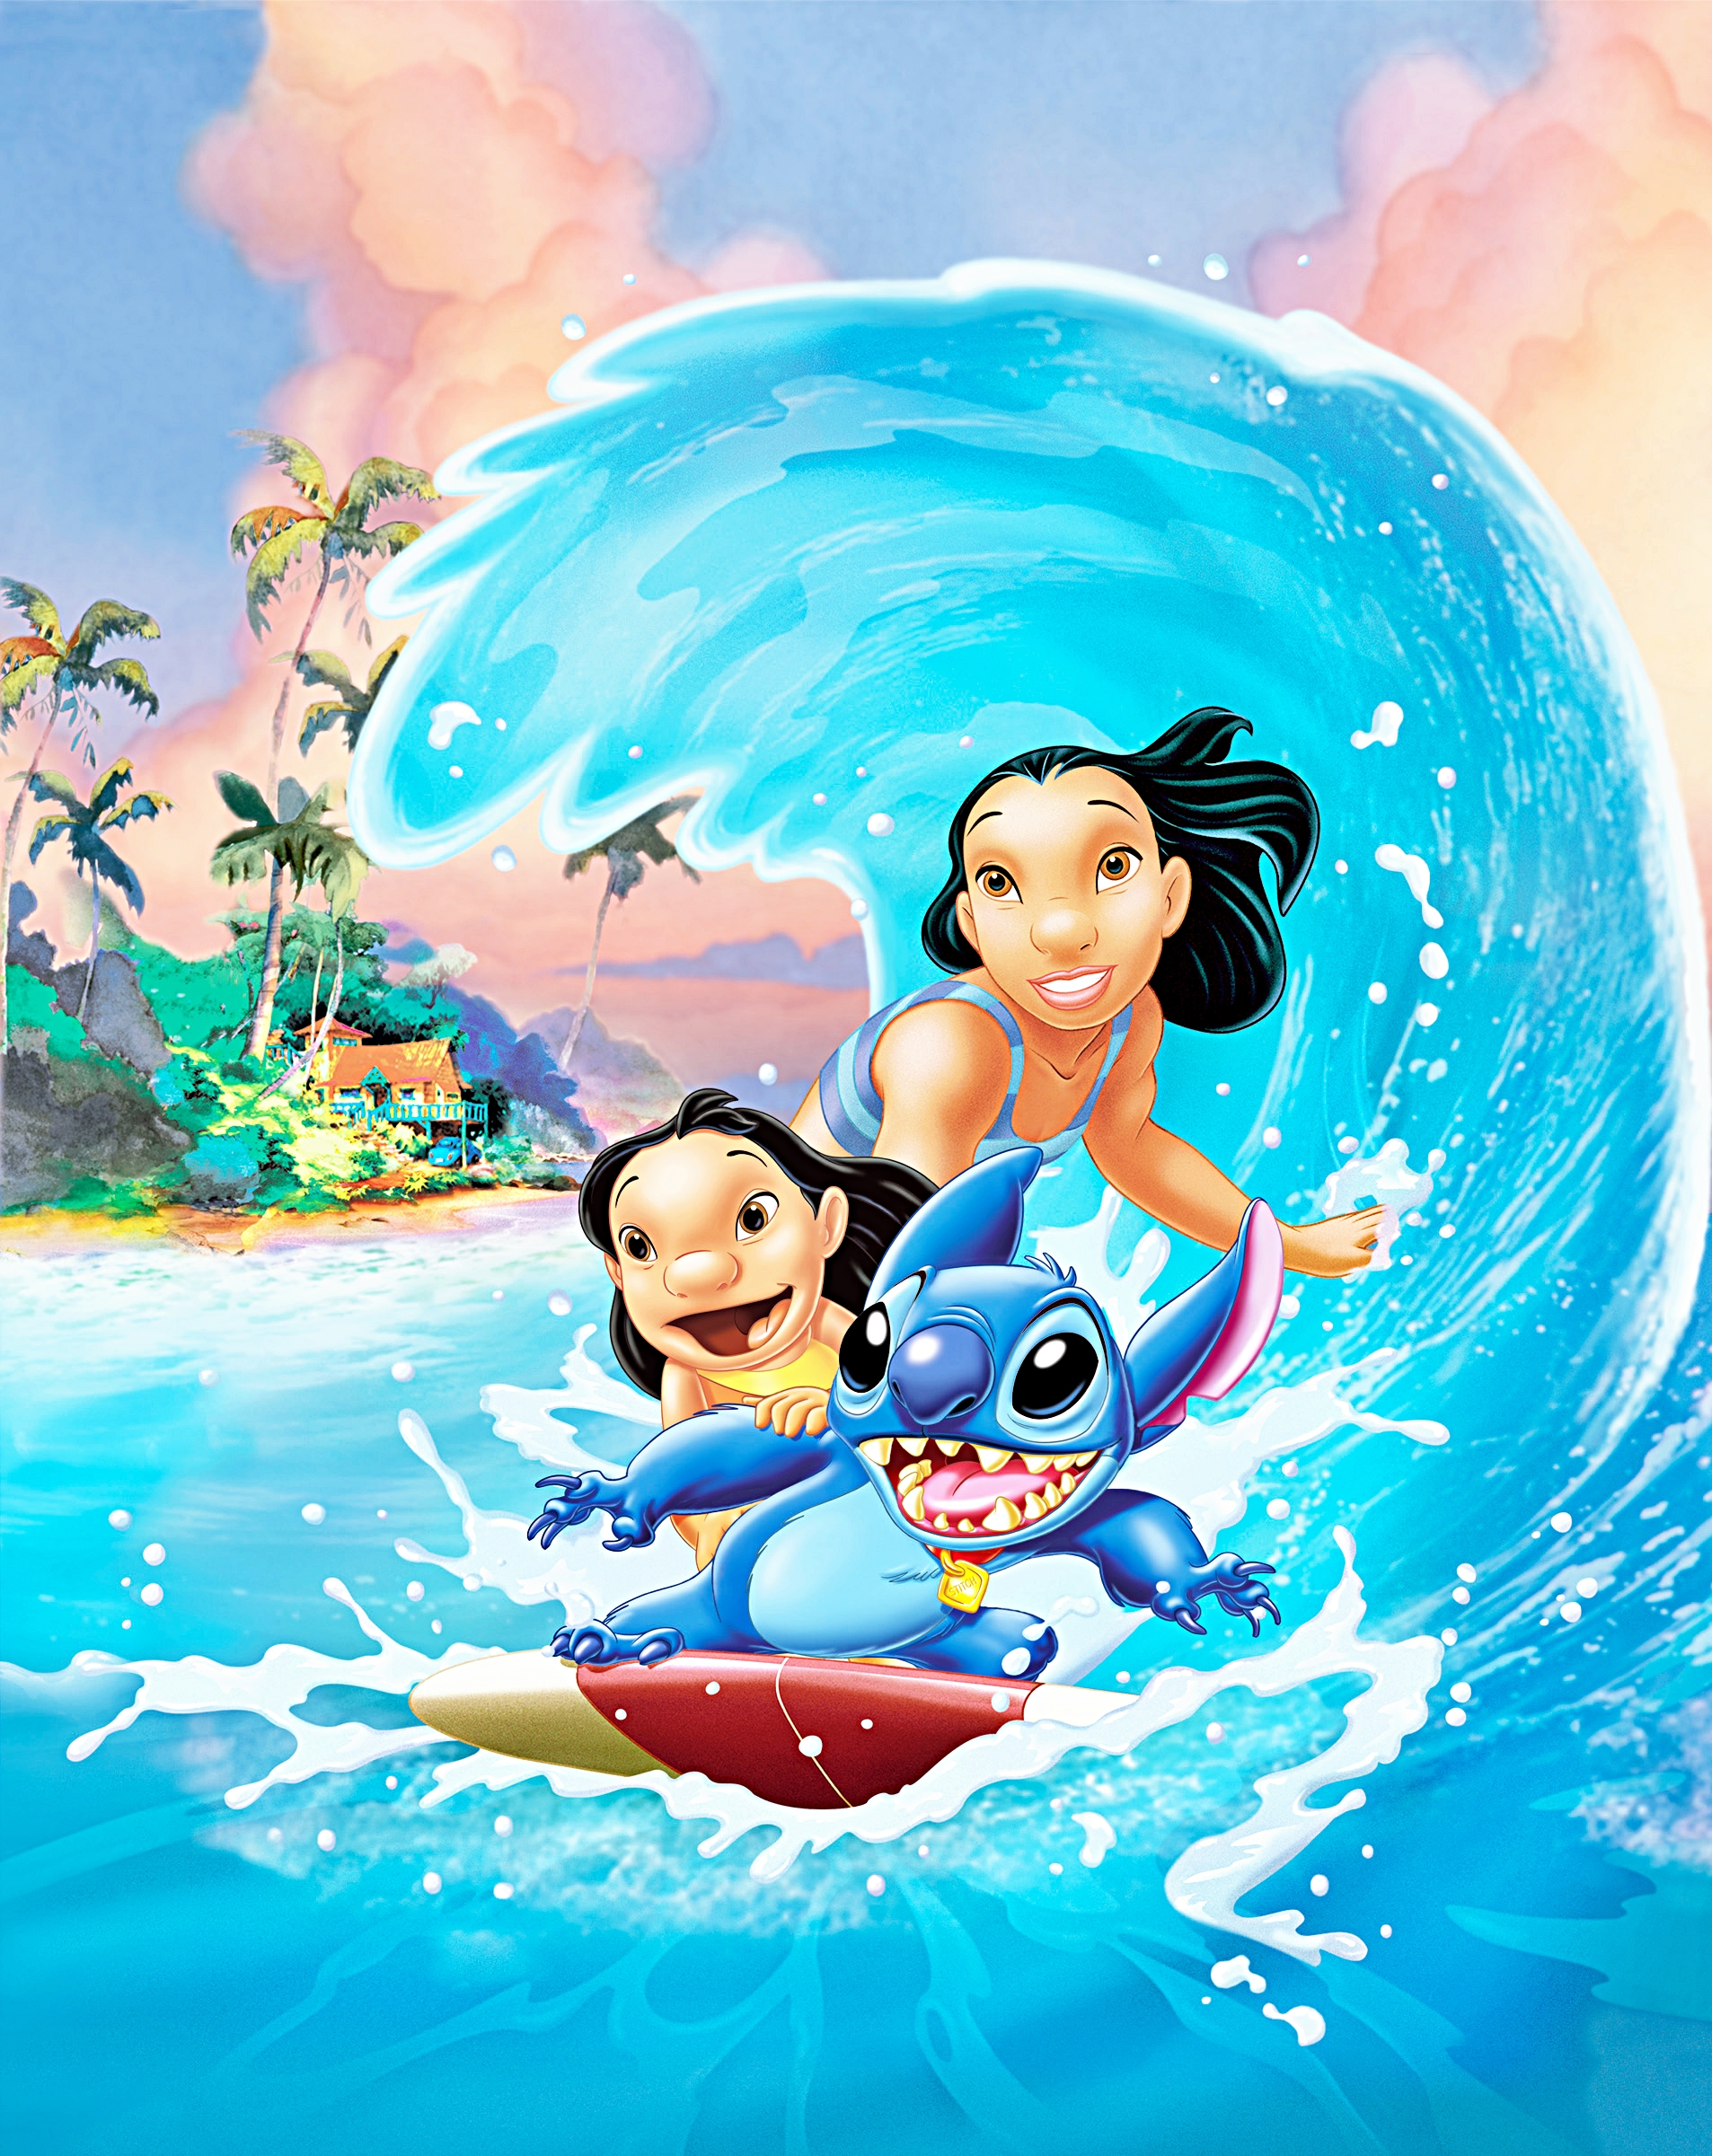 It's just a photo of Smart Images of Lilo & Stitch